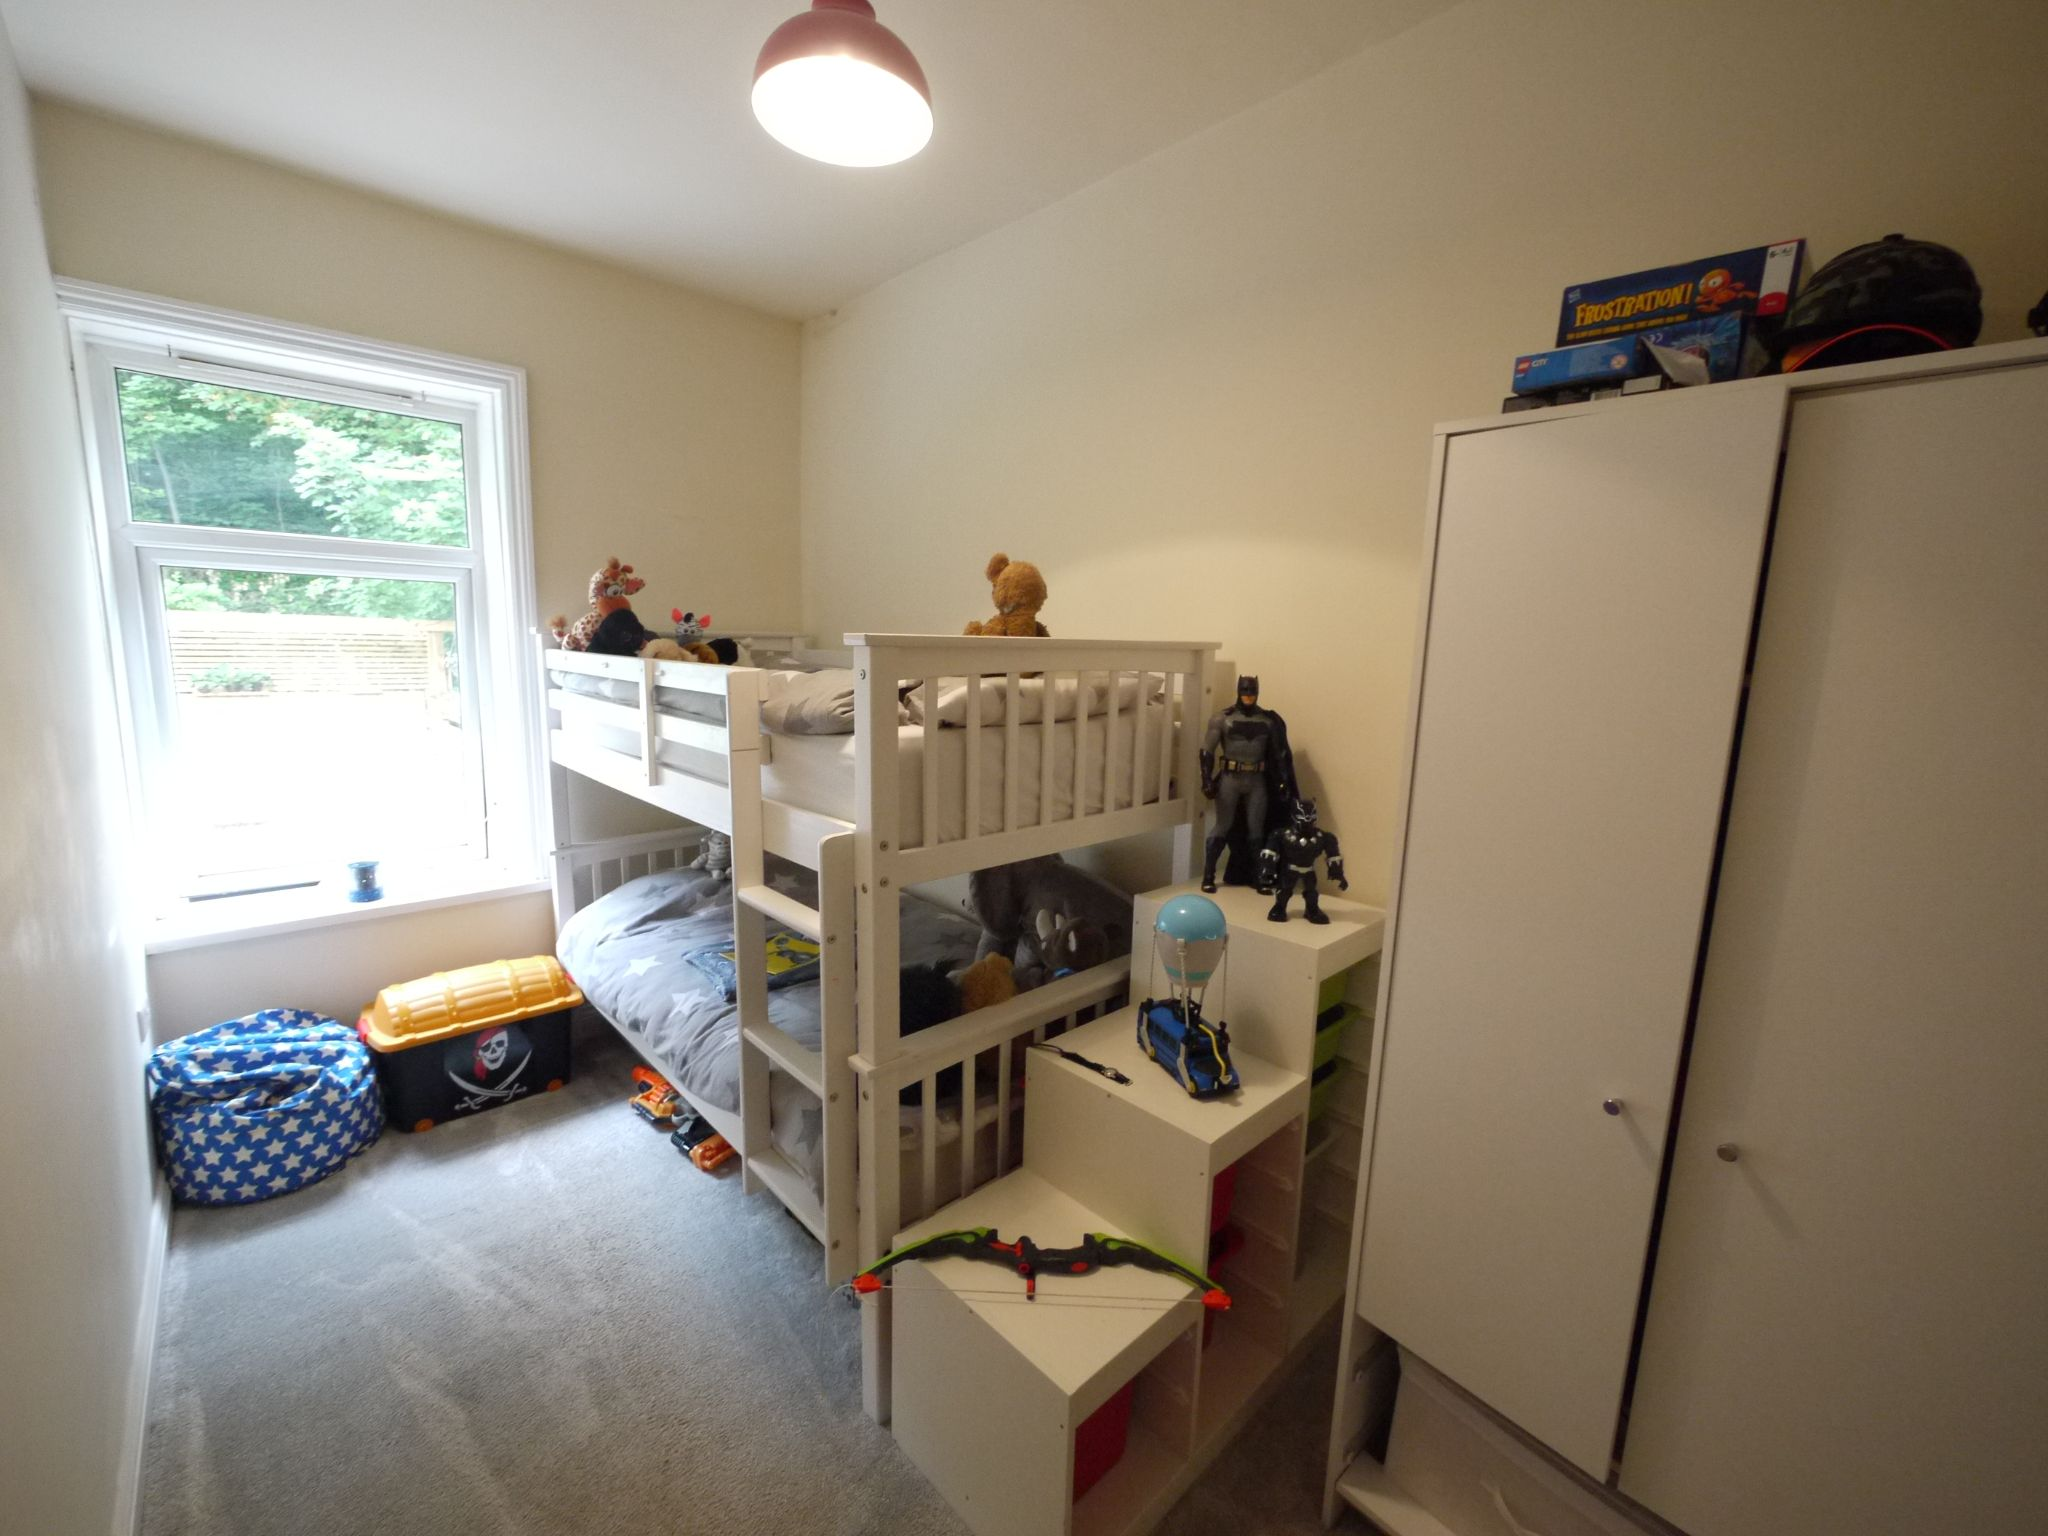 2 bedroom mid terraced house SSTC in Brighouse - Bedroom 2.